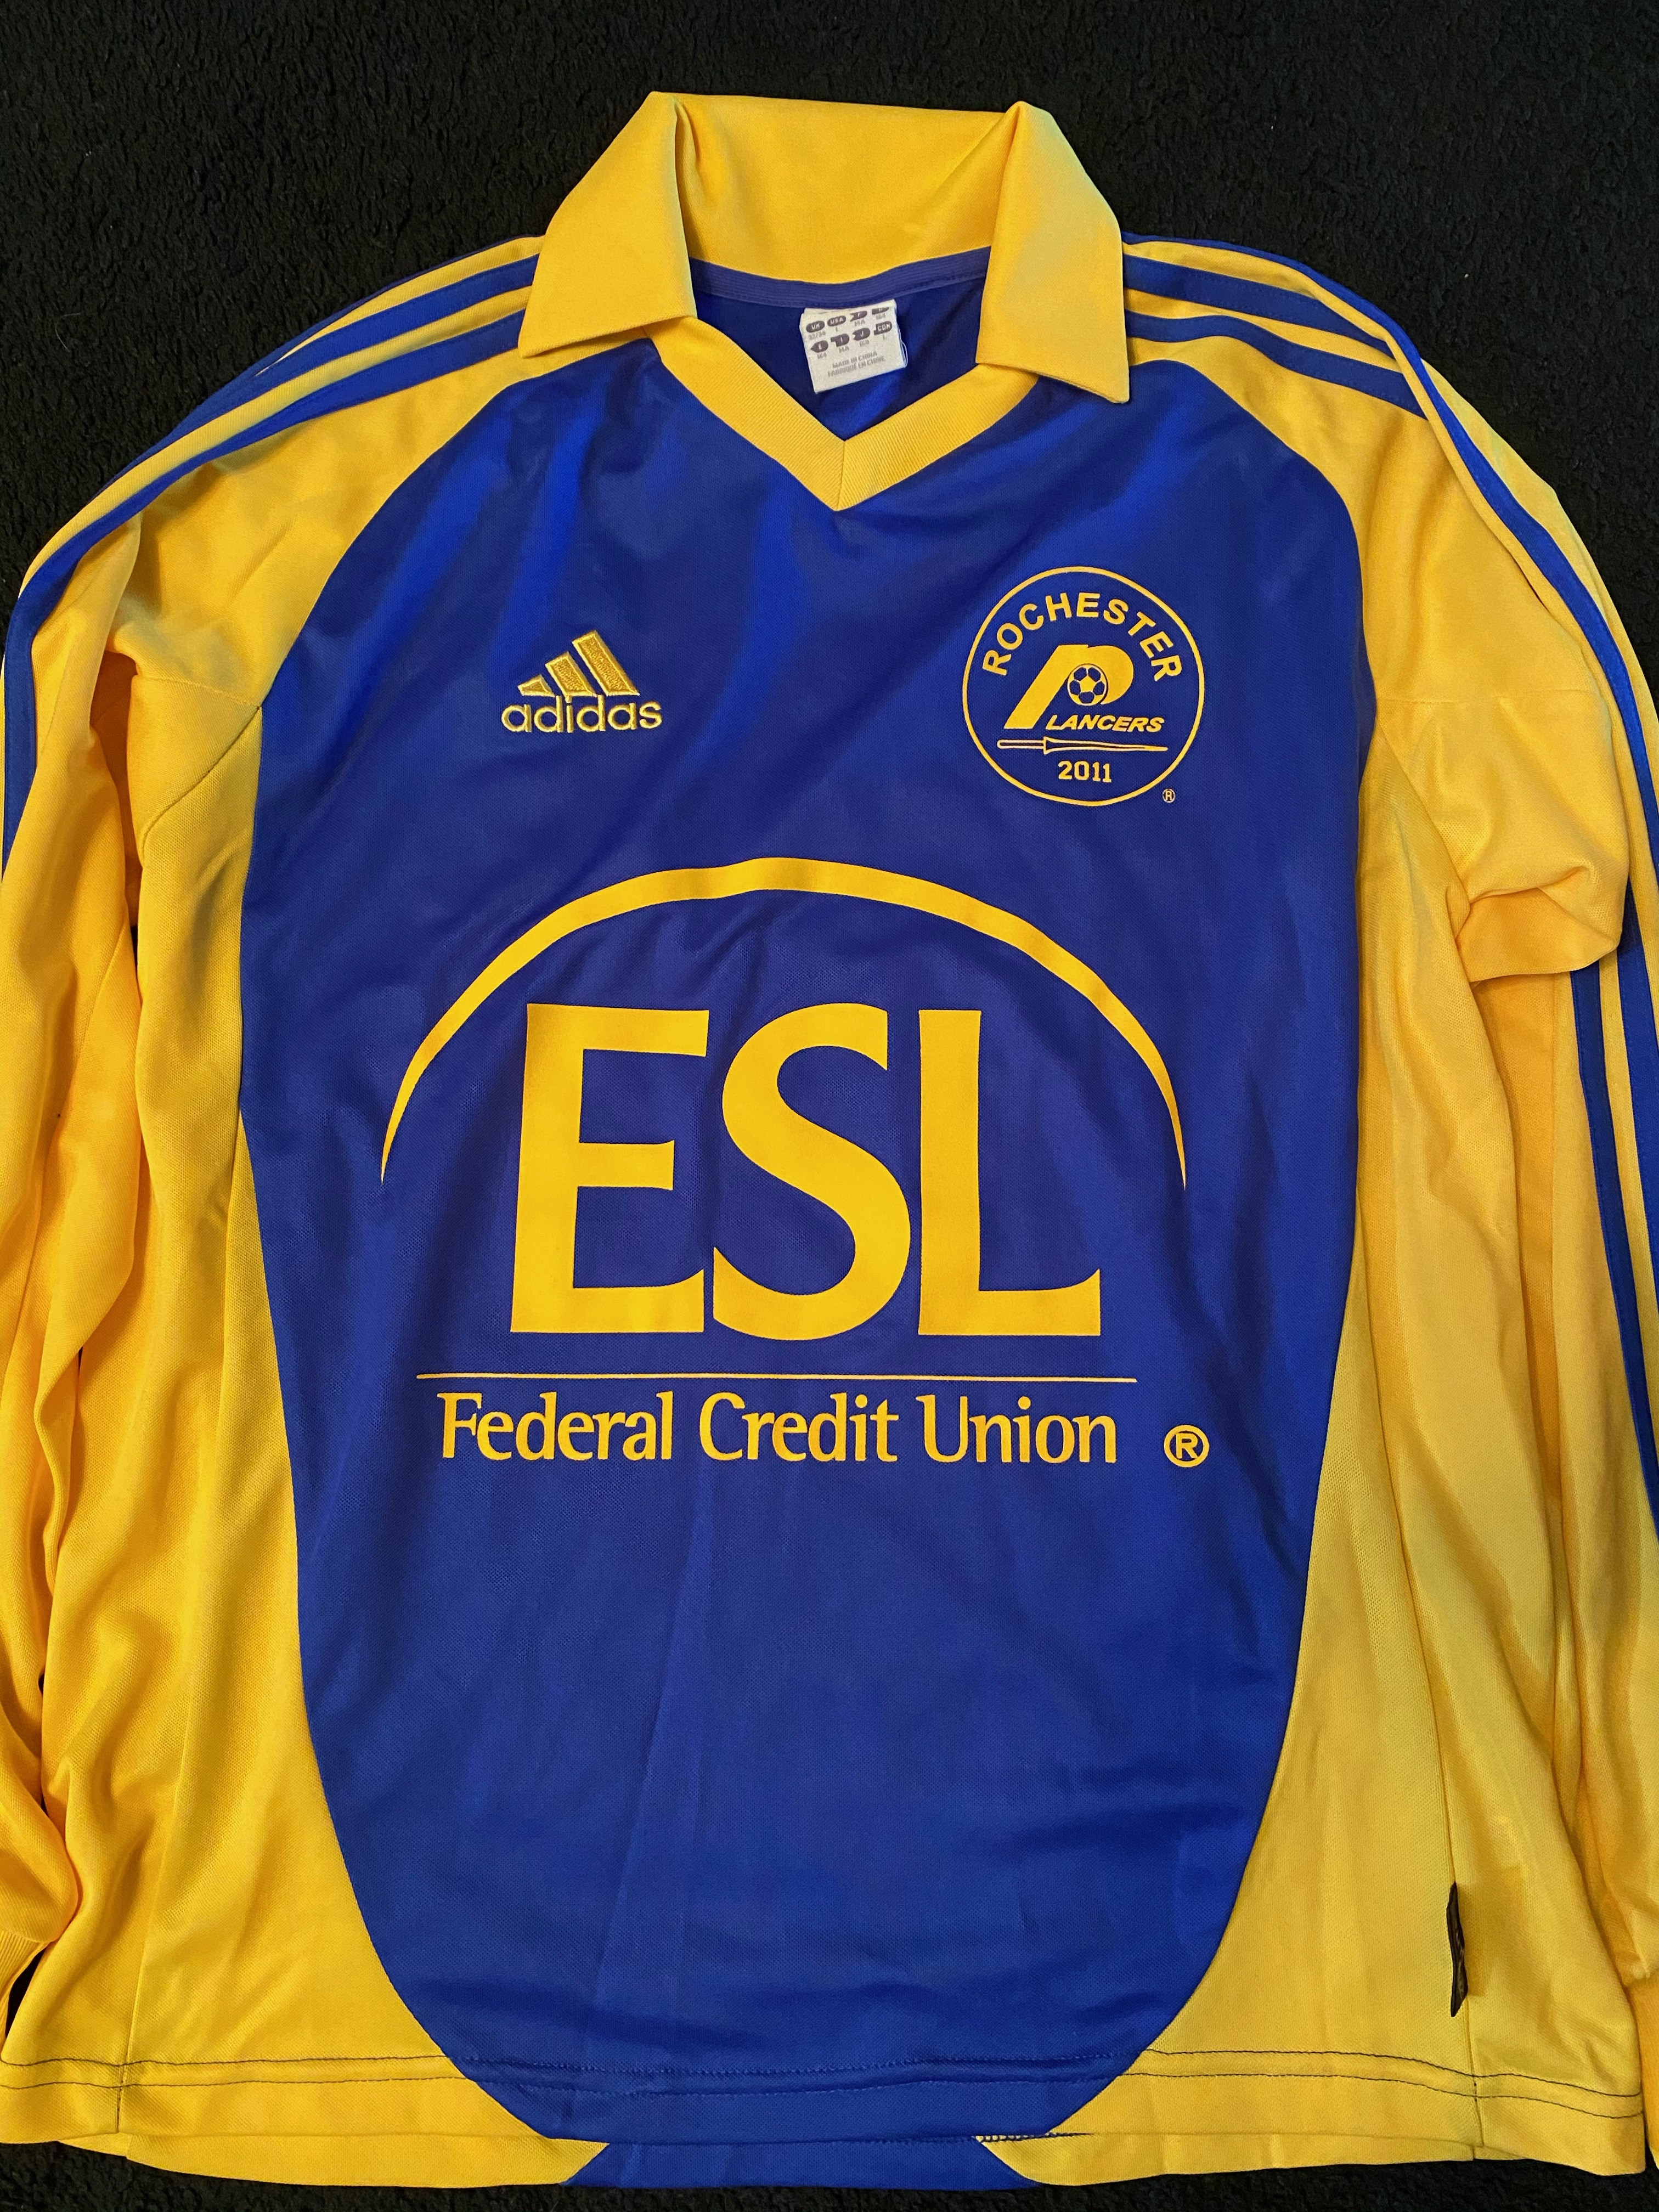 2011 Blue Adult Adidas Jersey